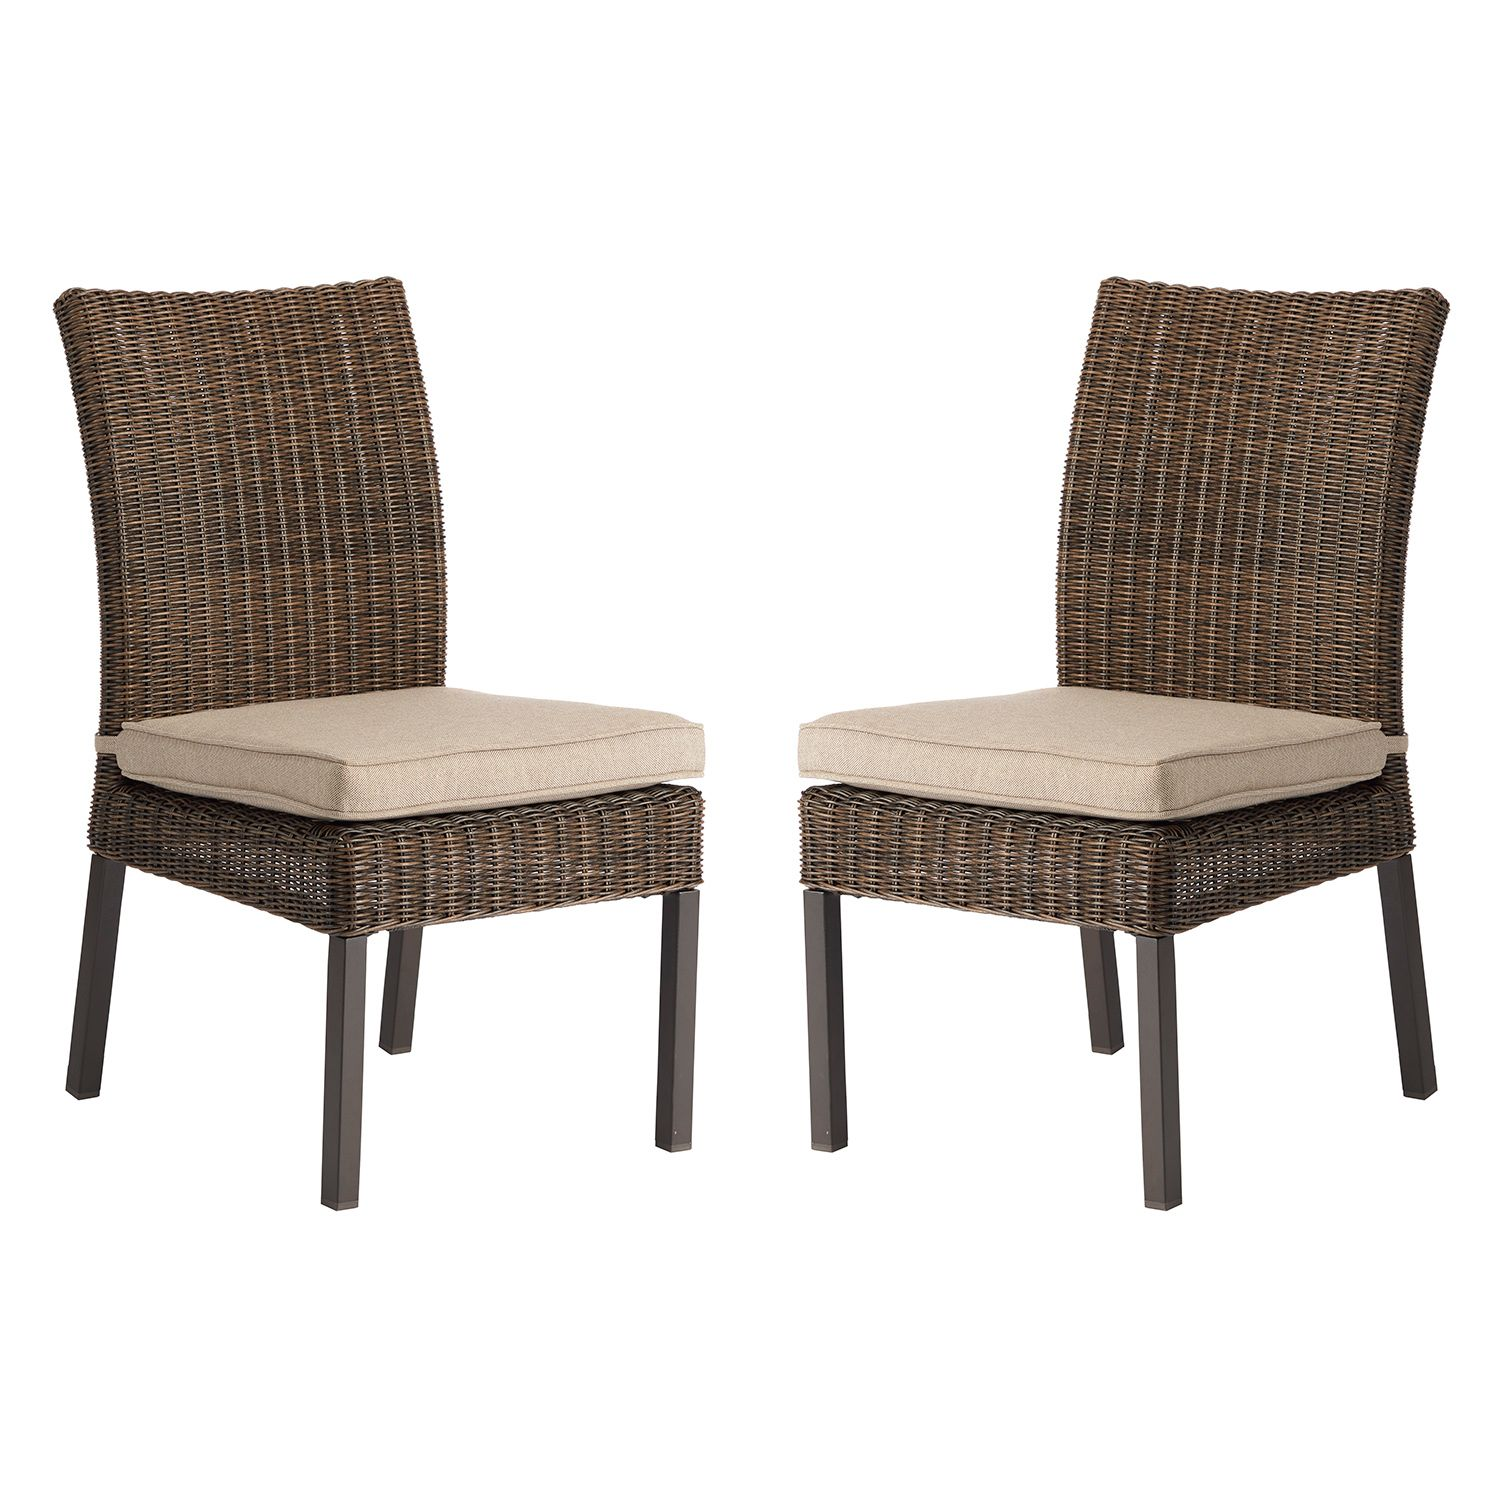 Bon SONOMA Goods For Life™ Brampton Outdoor Armless Dining Chair 2 Piece Set